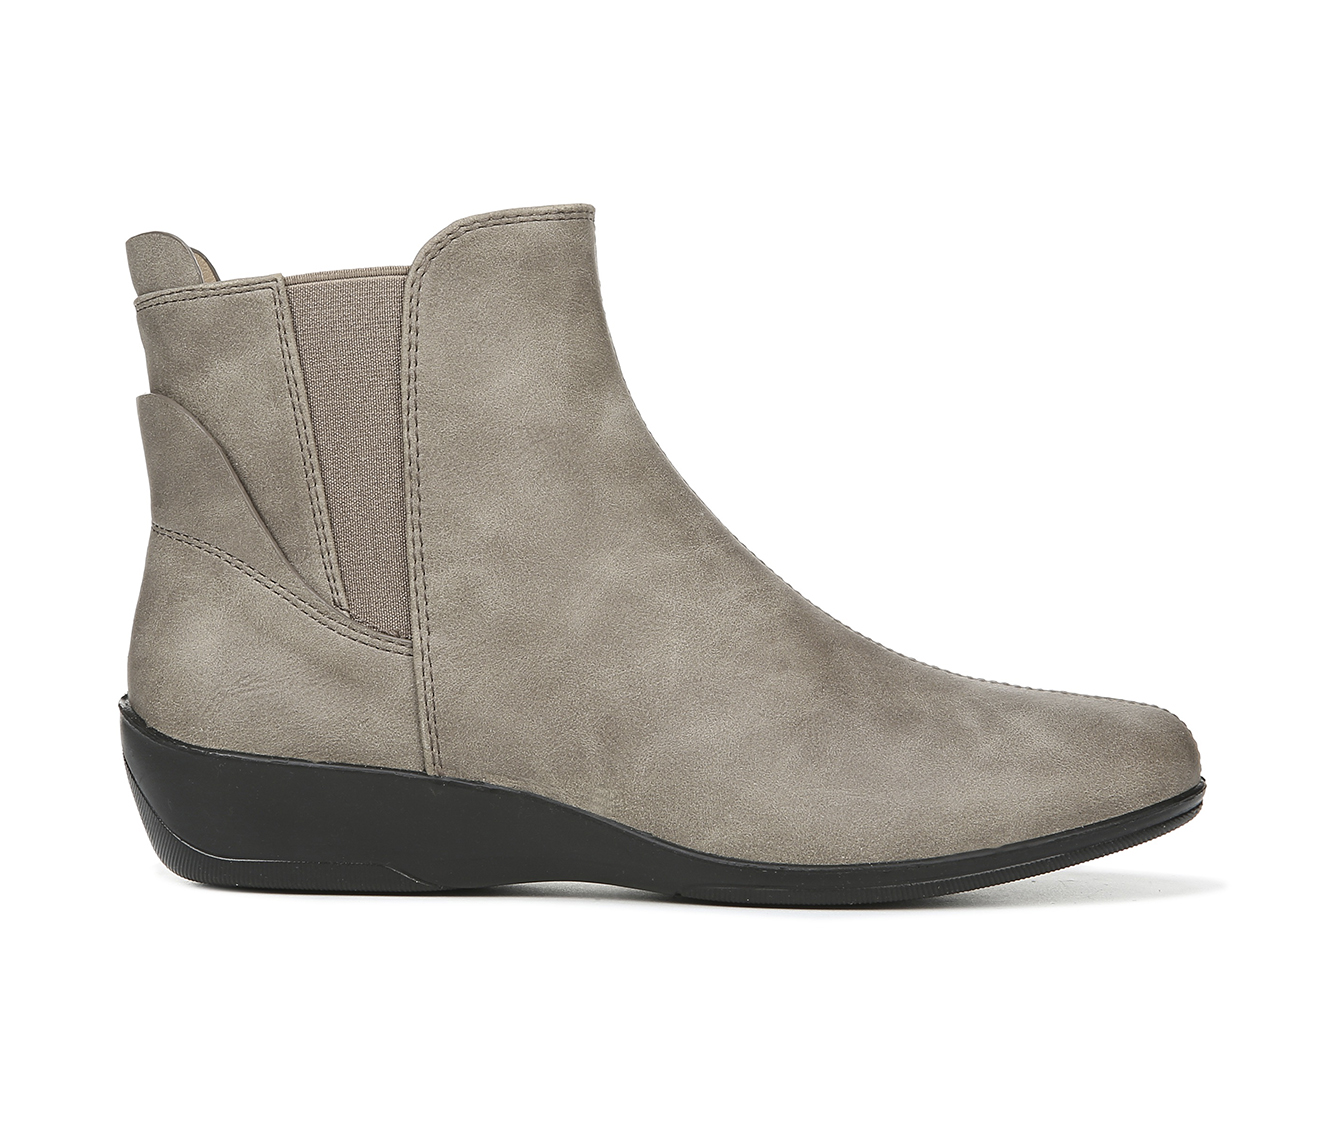 LifeStride Izzy Women's Boots (Gray - Faux Leather)